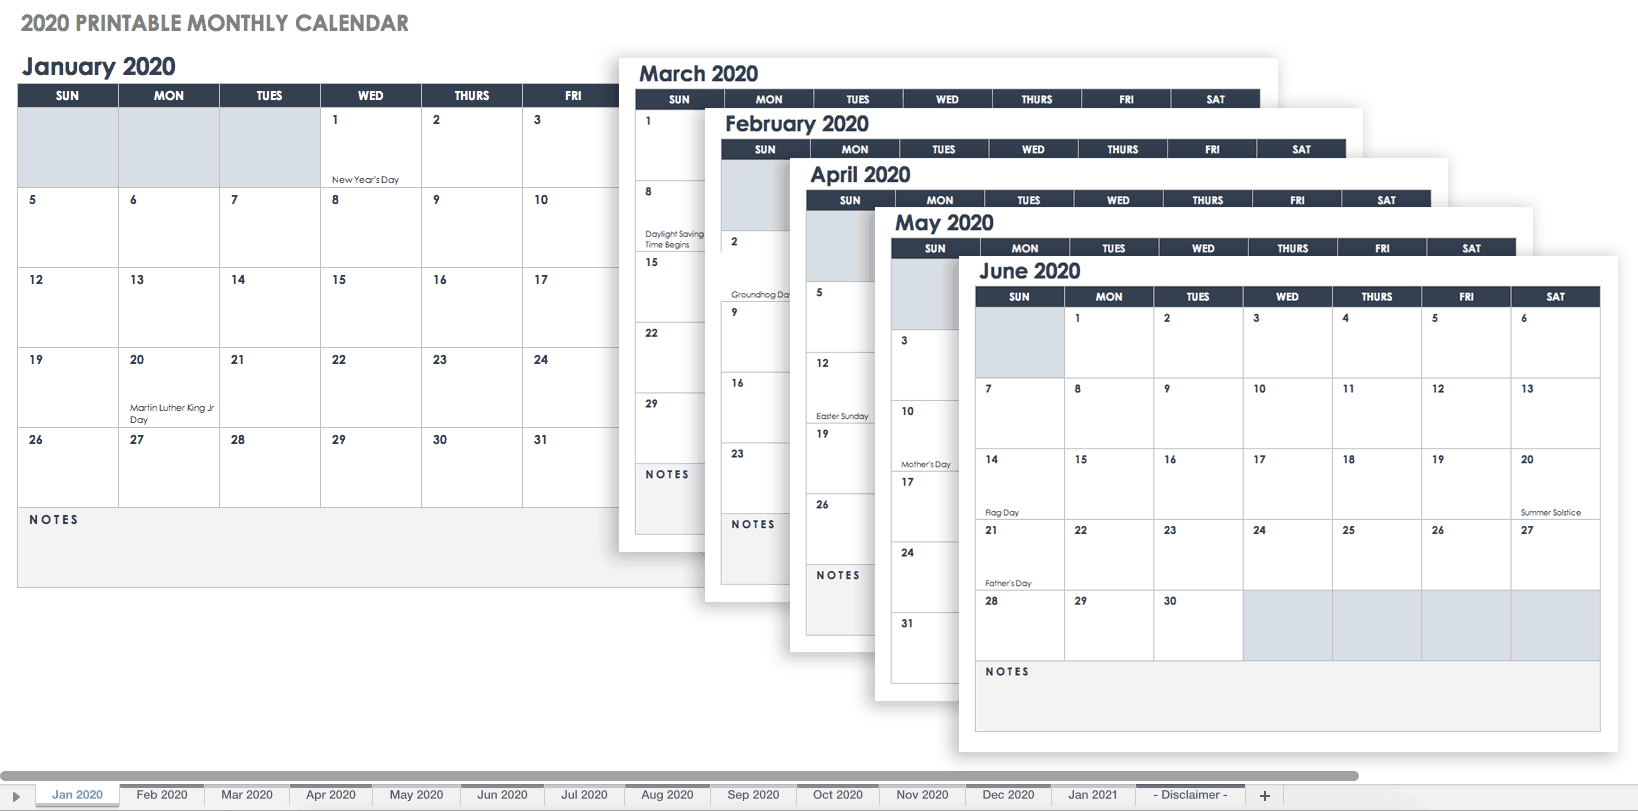 010 Weekly Calendar Template Excel Ic Printable Monthly